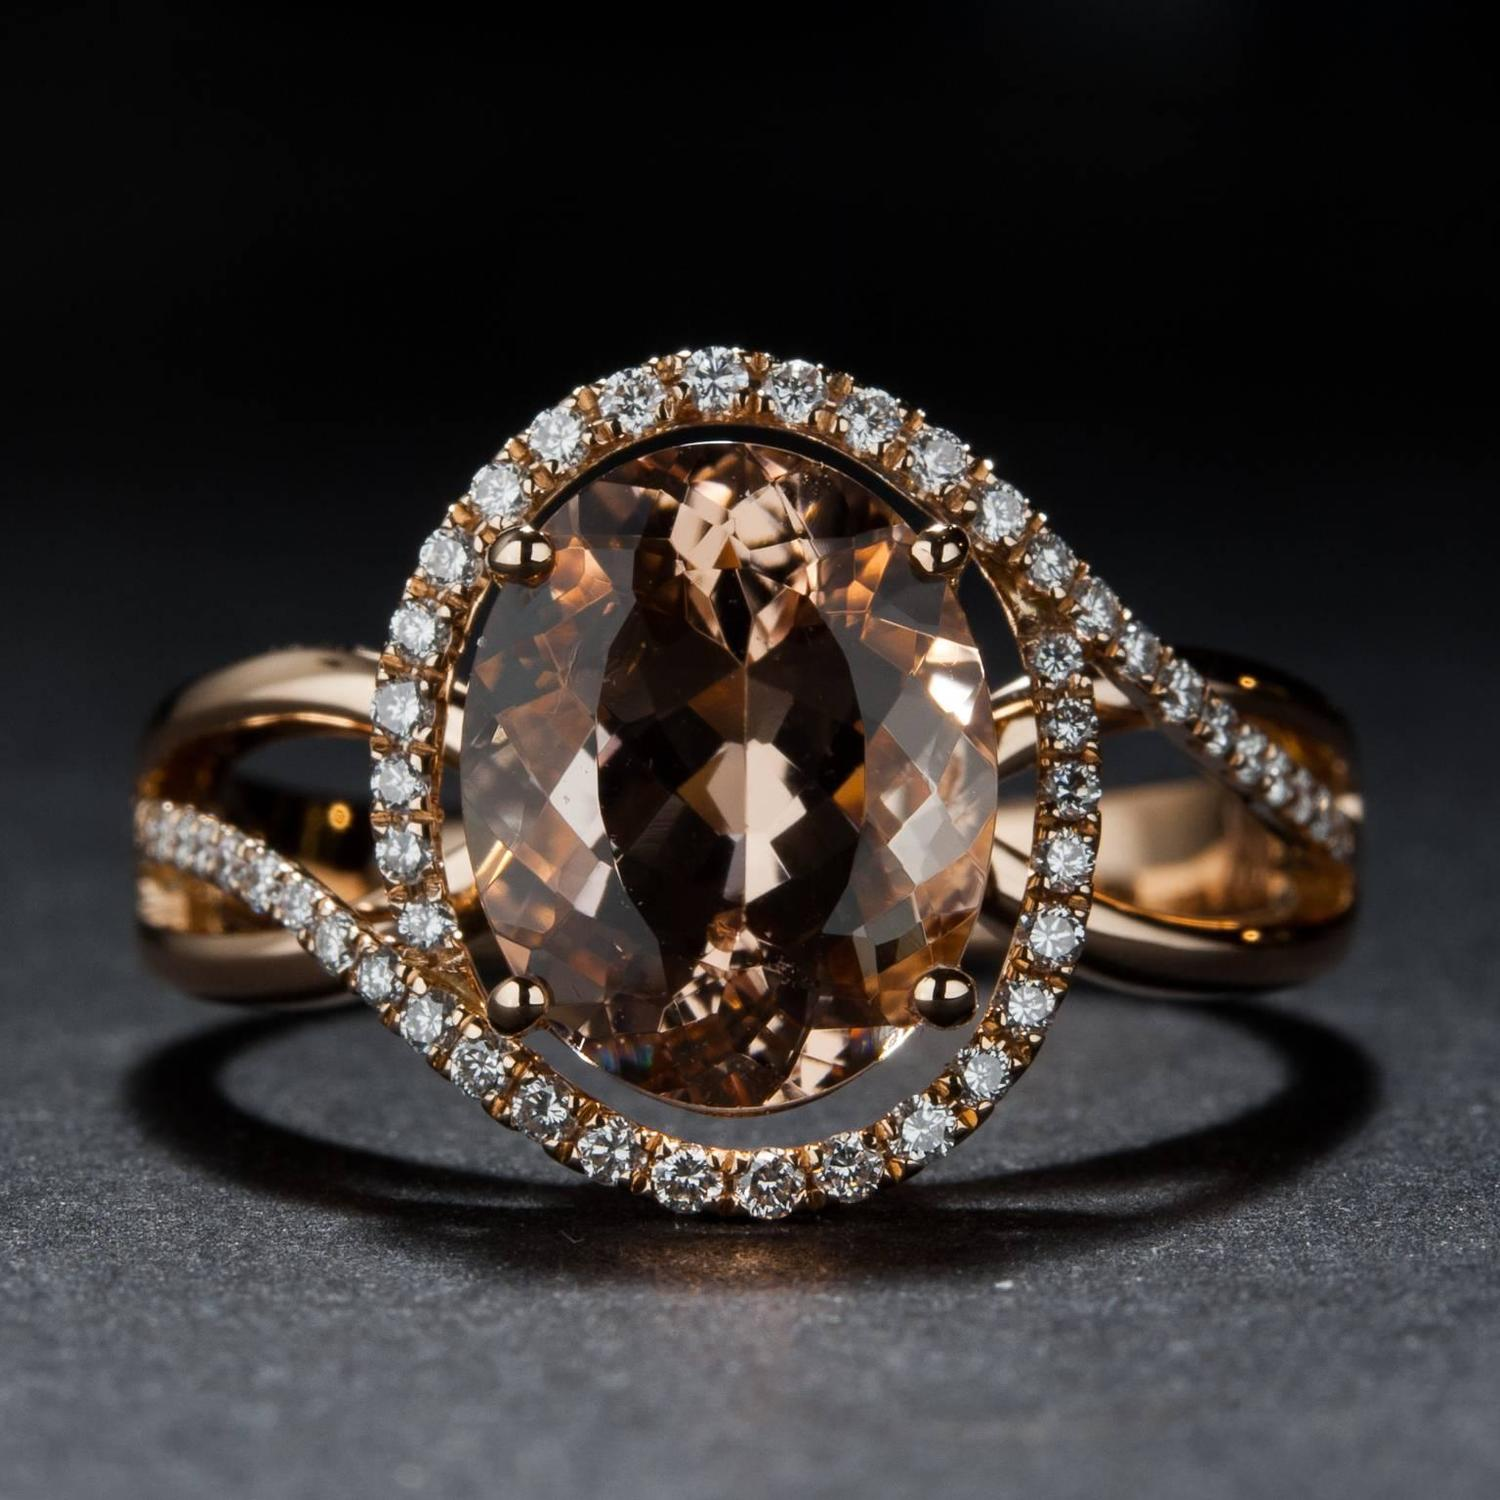 2 80ct Morganite and Diamond Ring For Sale at 1stdibs